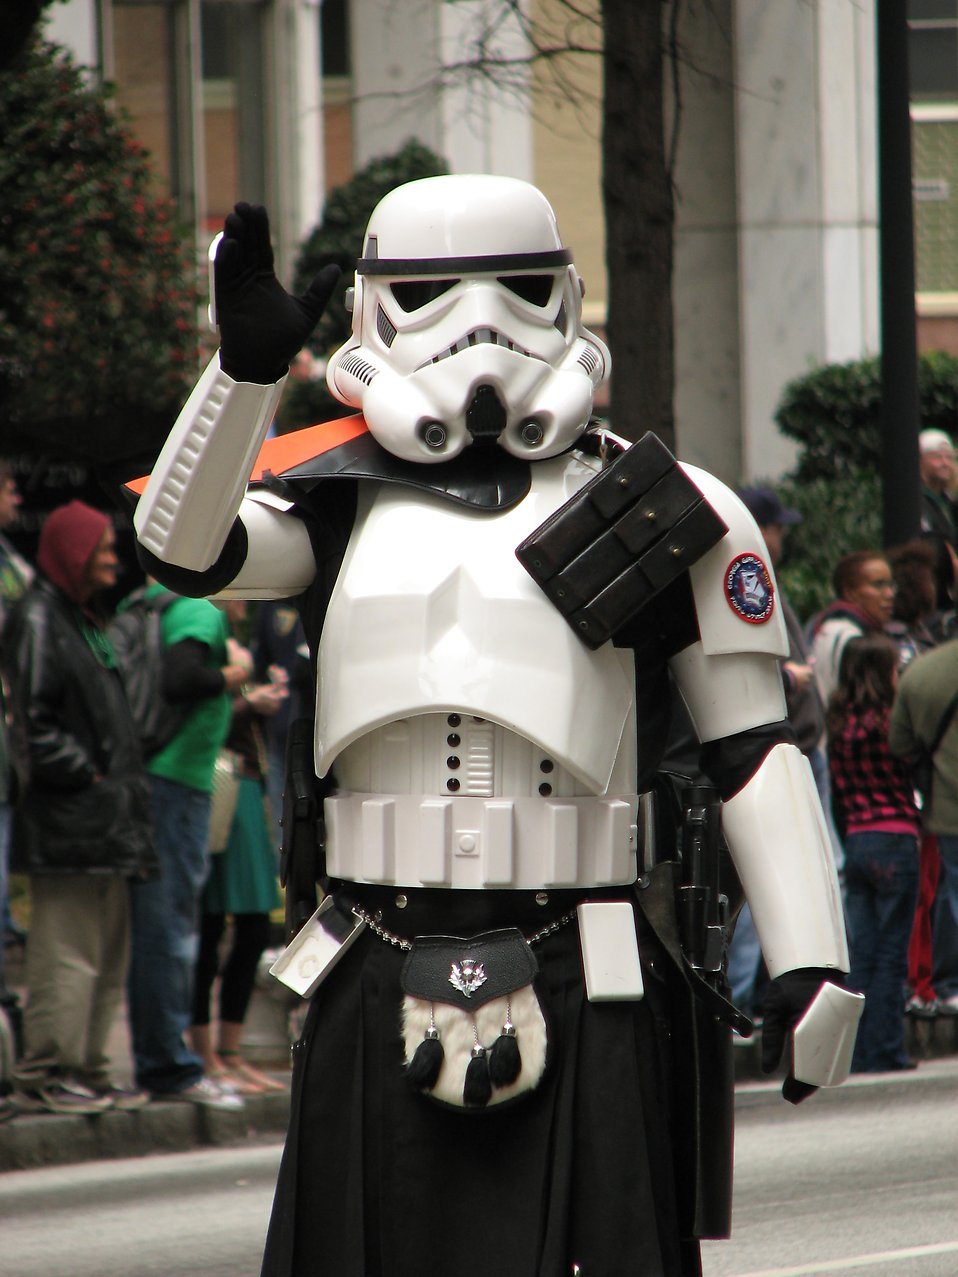 A Star Wars stormtrooper at the 2010 Atlanta Saint Patrick's Day Parade : Free Stock Photo